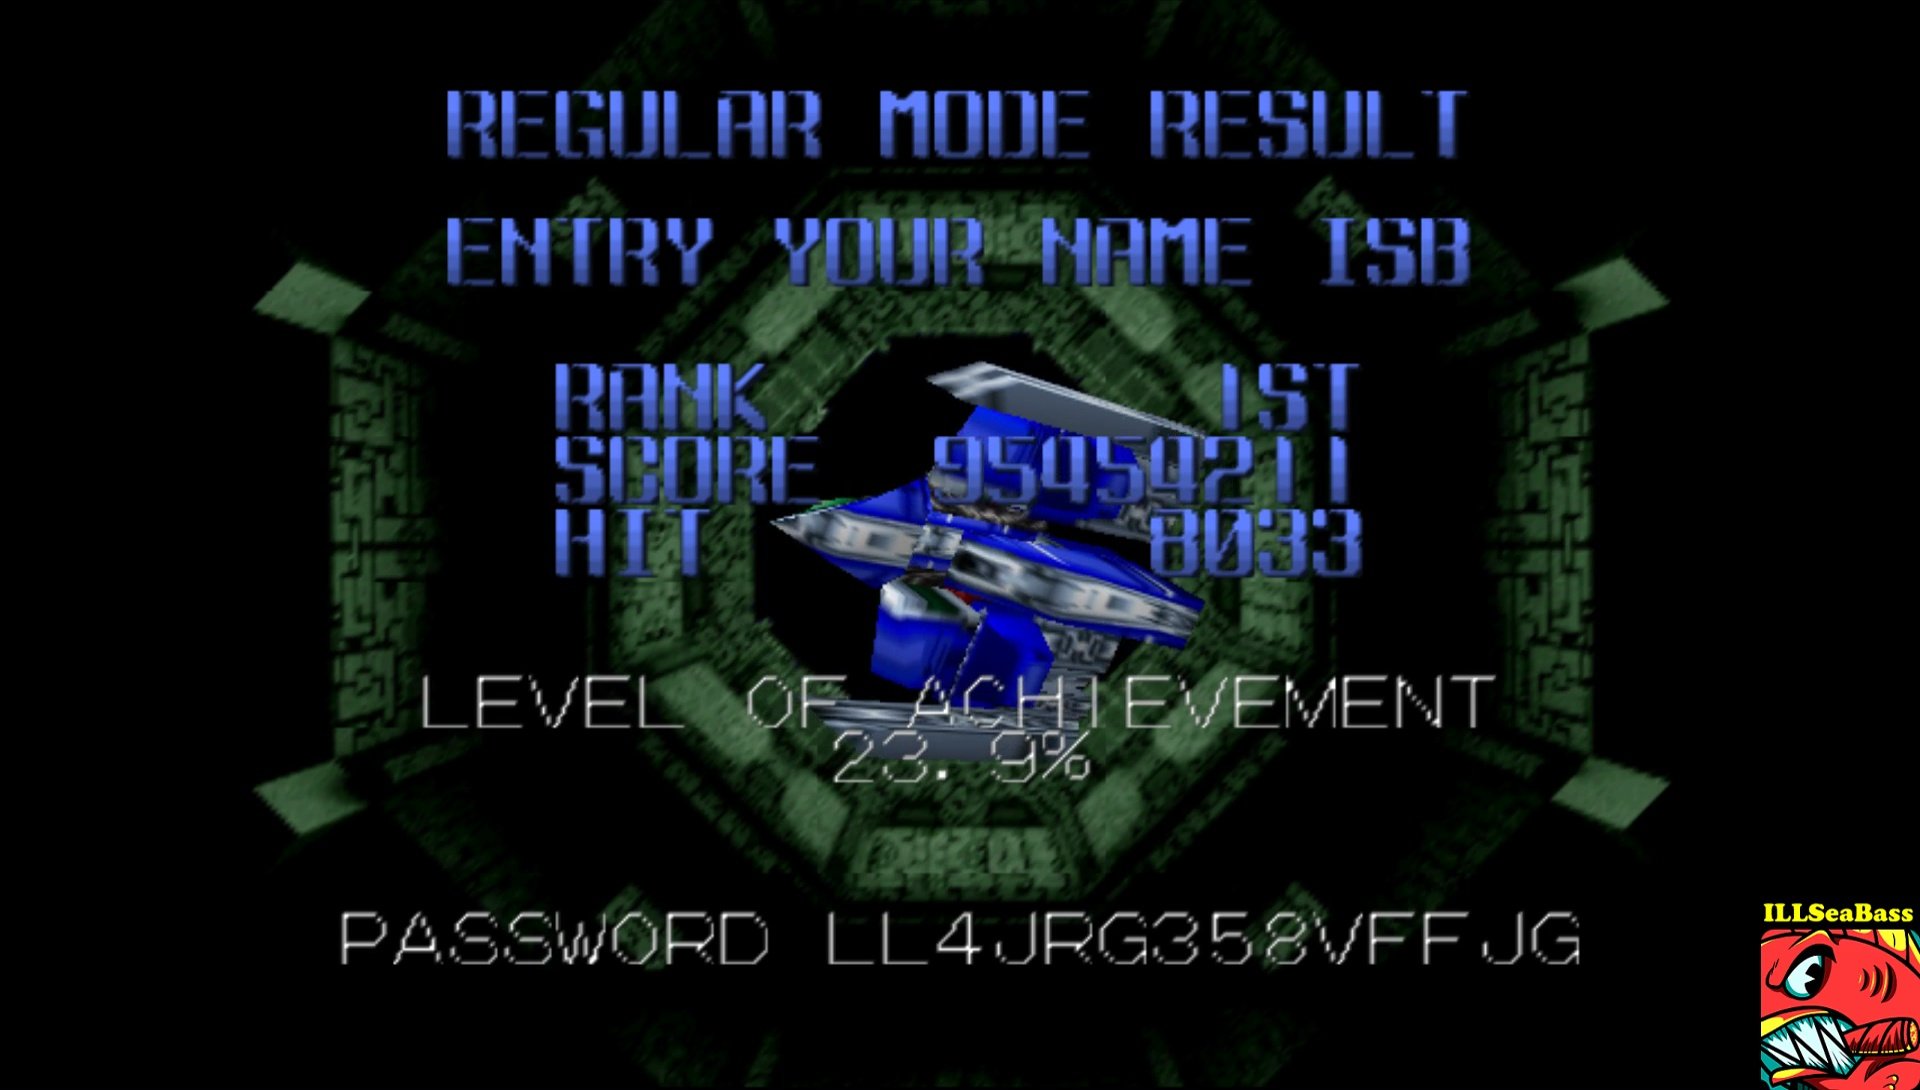 ILLSeaBass: Star Soldier Vanishing Earth: Normal Mode [Regular] (N64 Emulated) 95,454,211 points on 2017-06-11 22:25:17